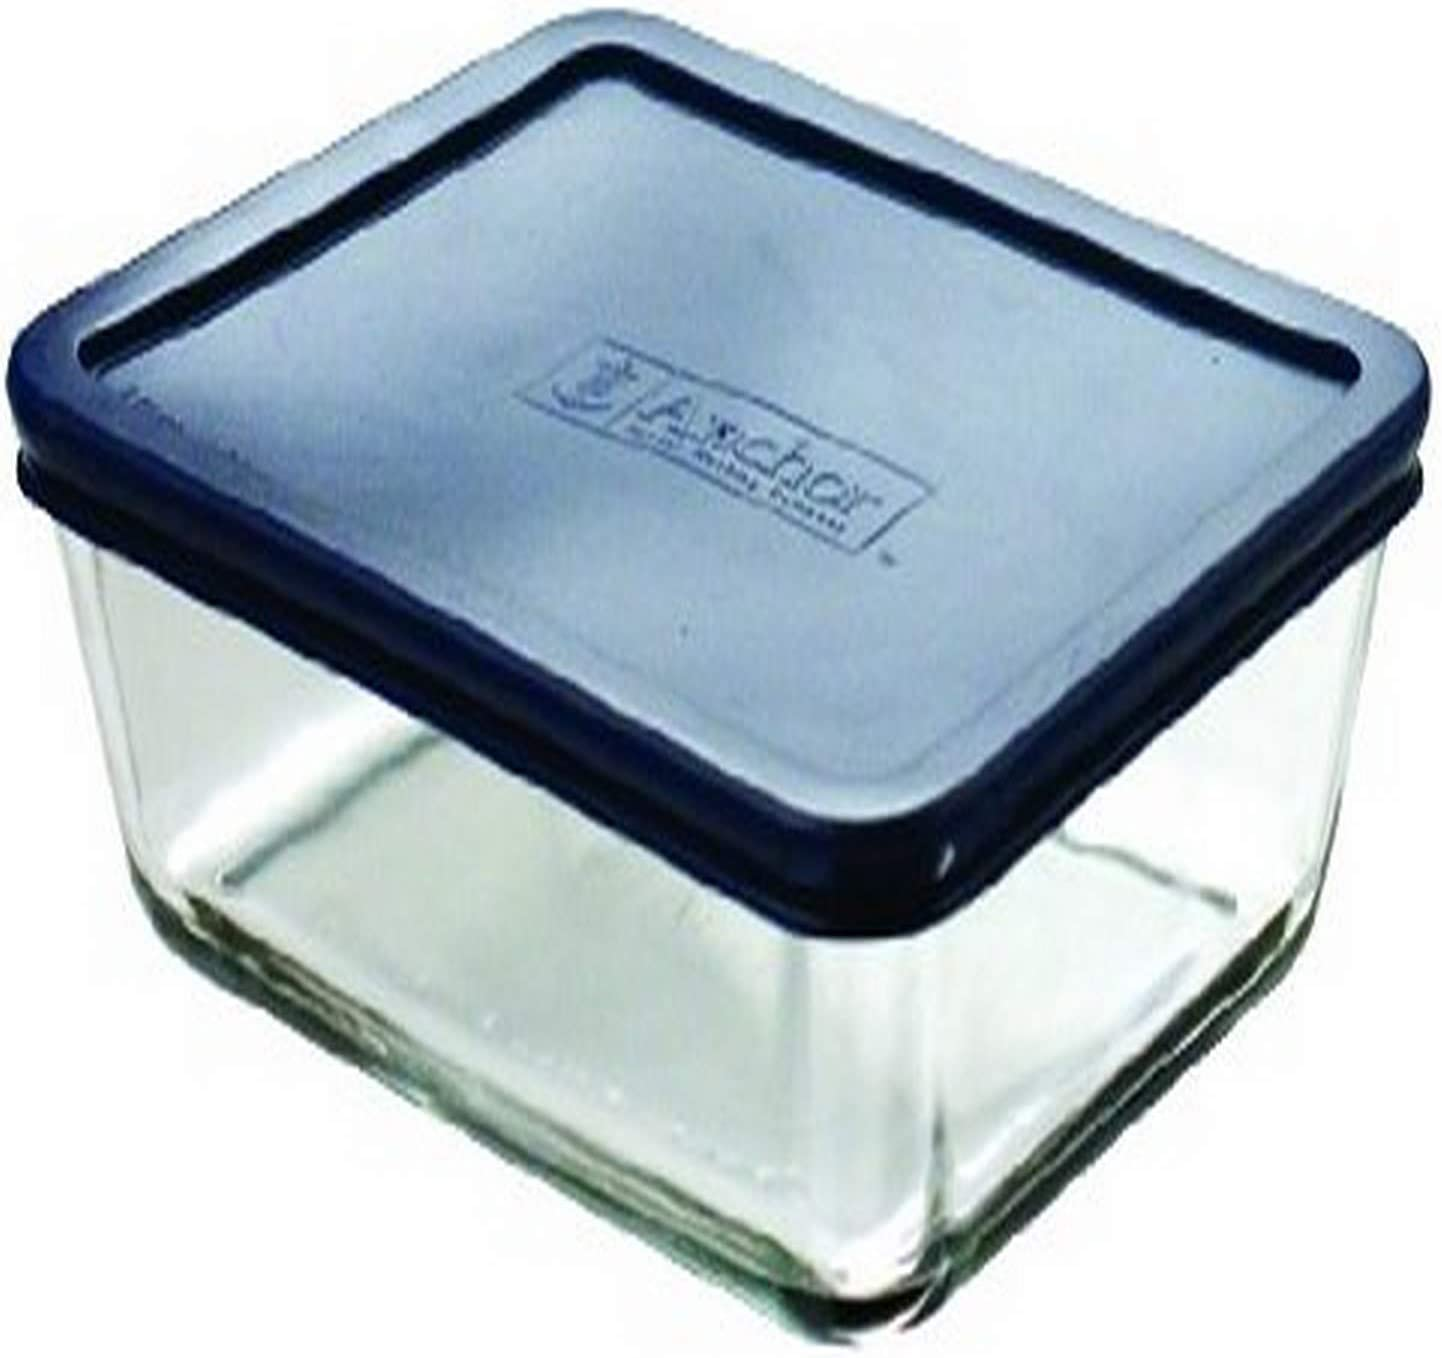 Anchor Hocking 4.75-Cup Rectangular Food Storage Containers with Blue Plastic Lids, Set of 4